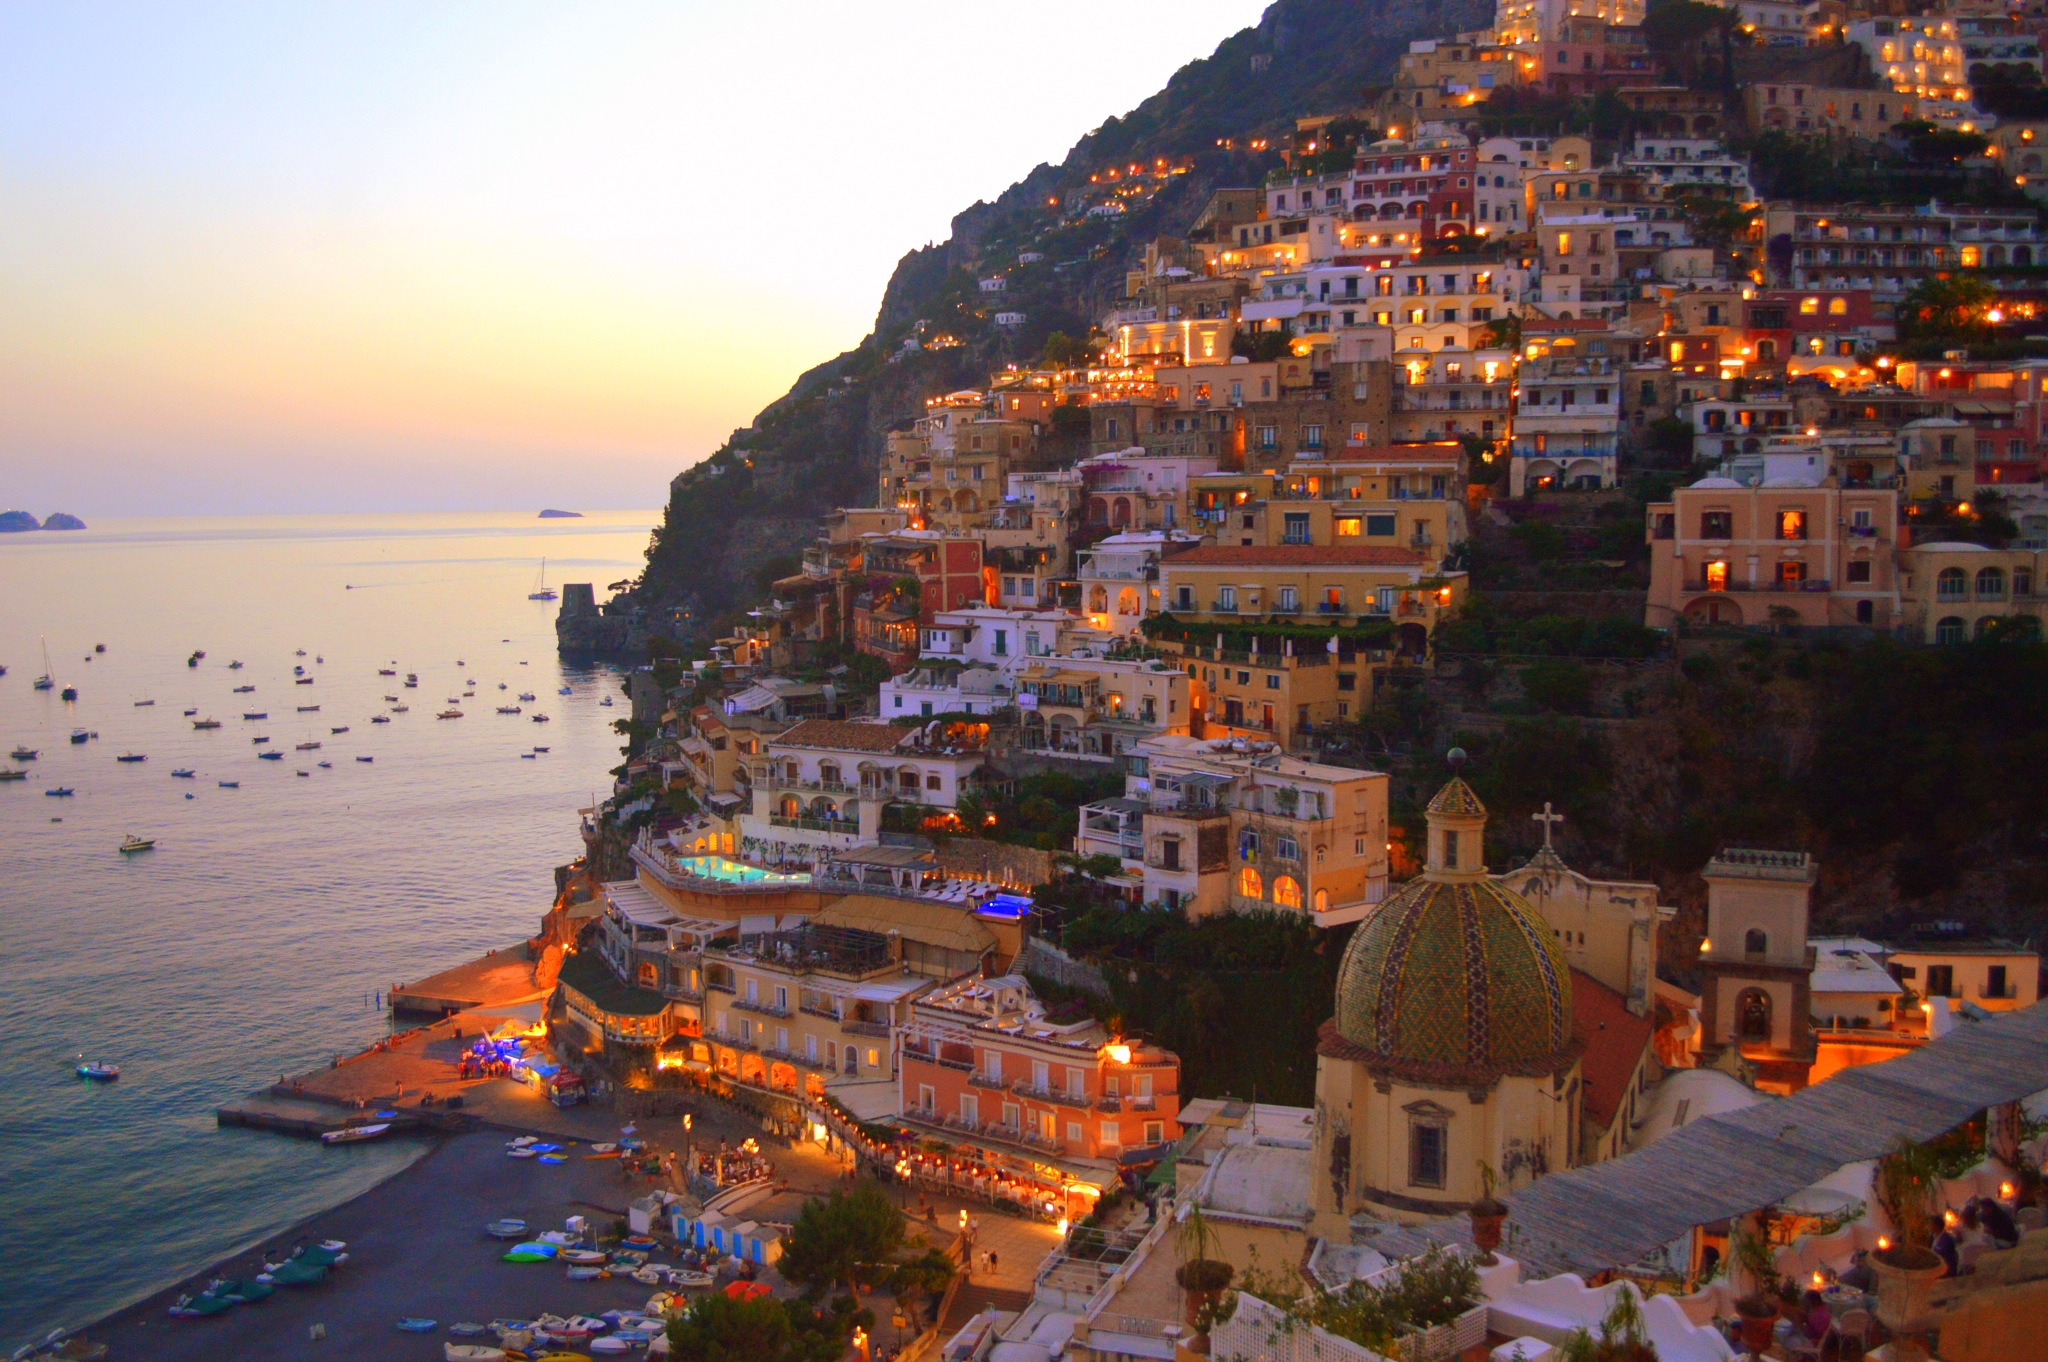 Positano in the evening by Frederico Domondon